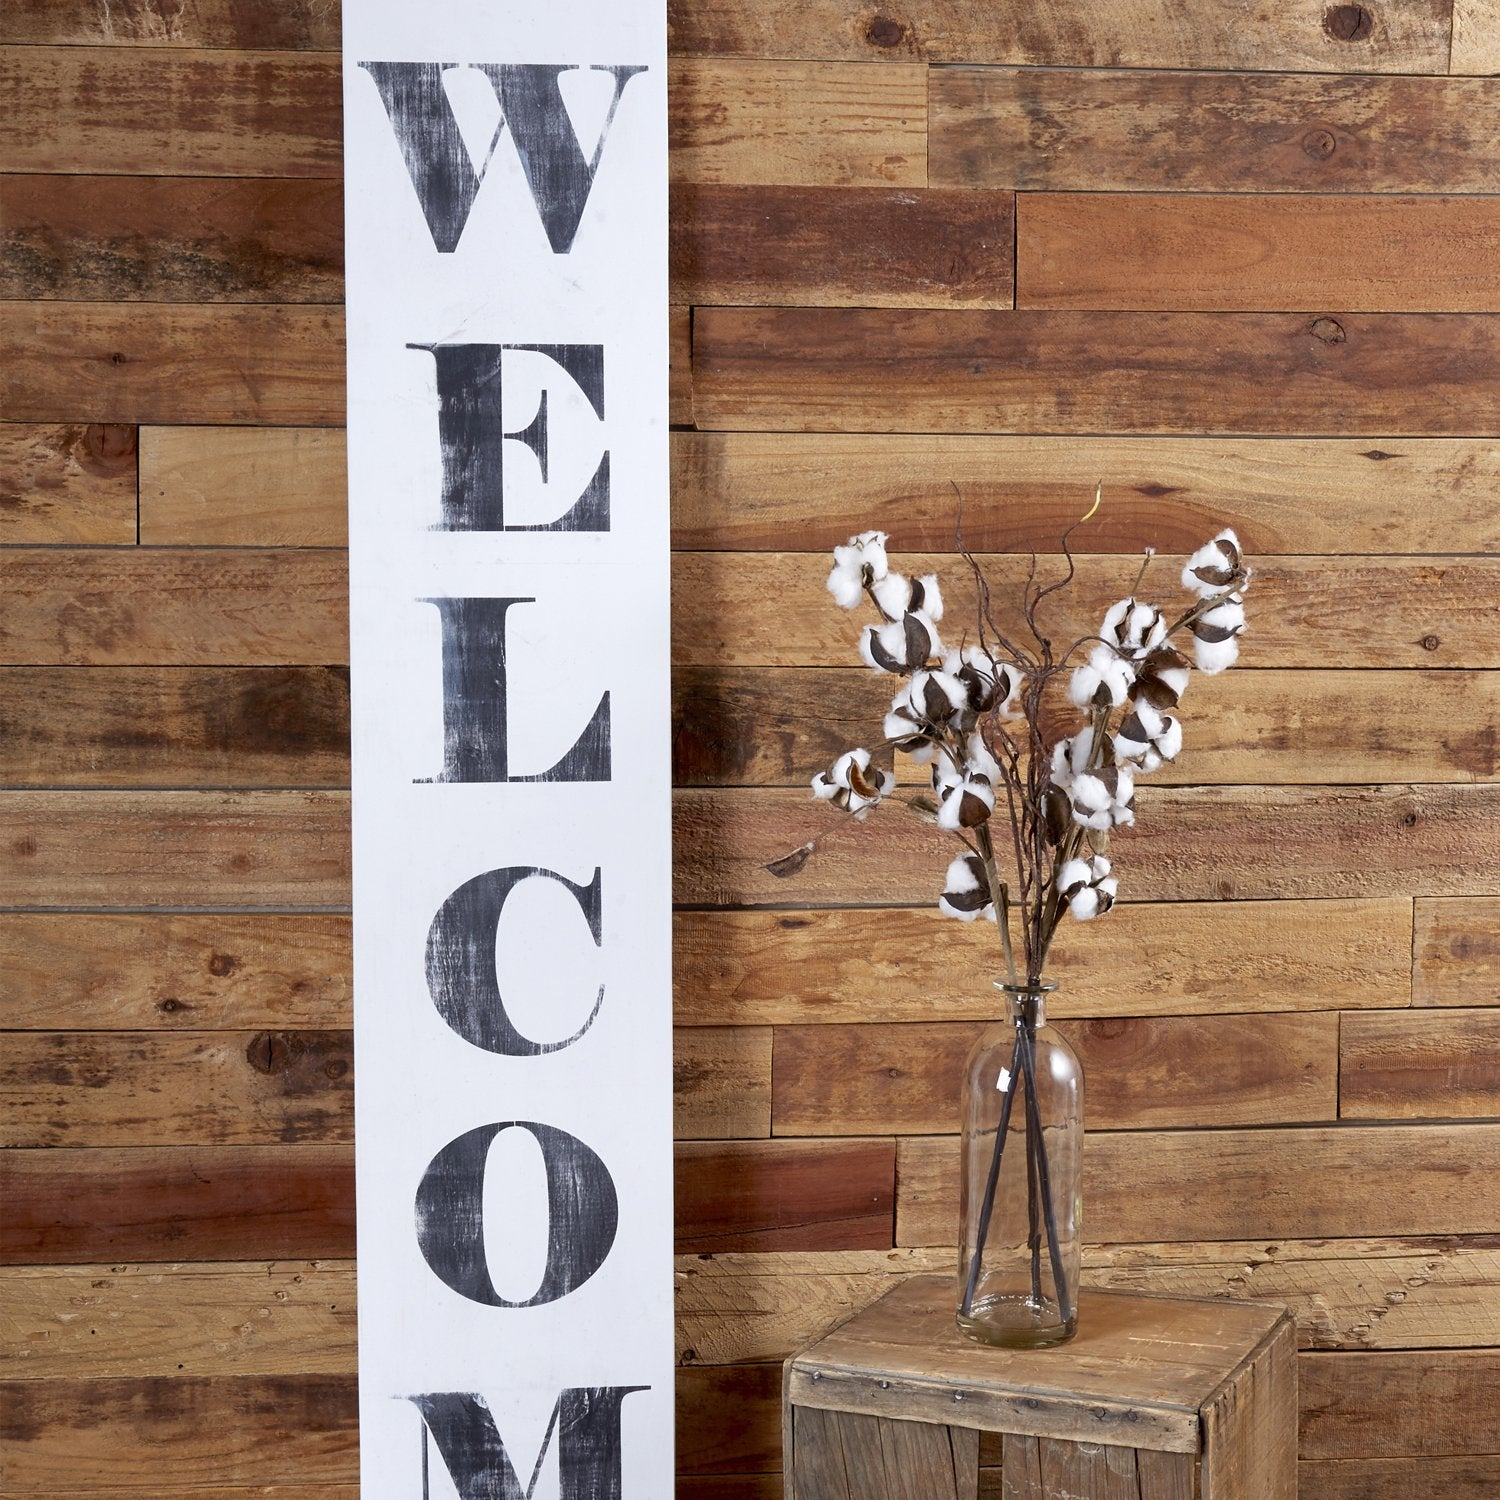 Reusable Farmhouse sign stencils for painting on wood, 5ft foot vertical welcome porch sign stencil, DIY Farmhouse decor